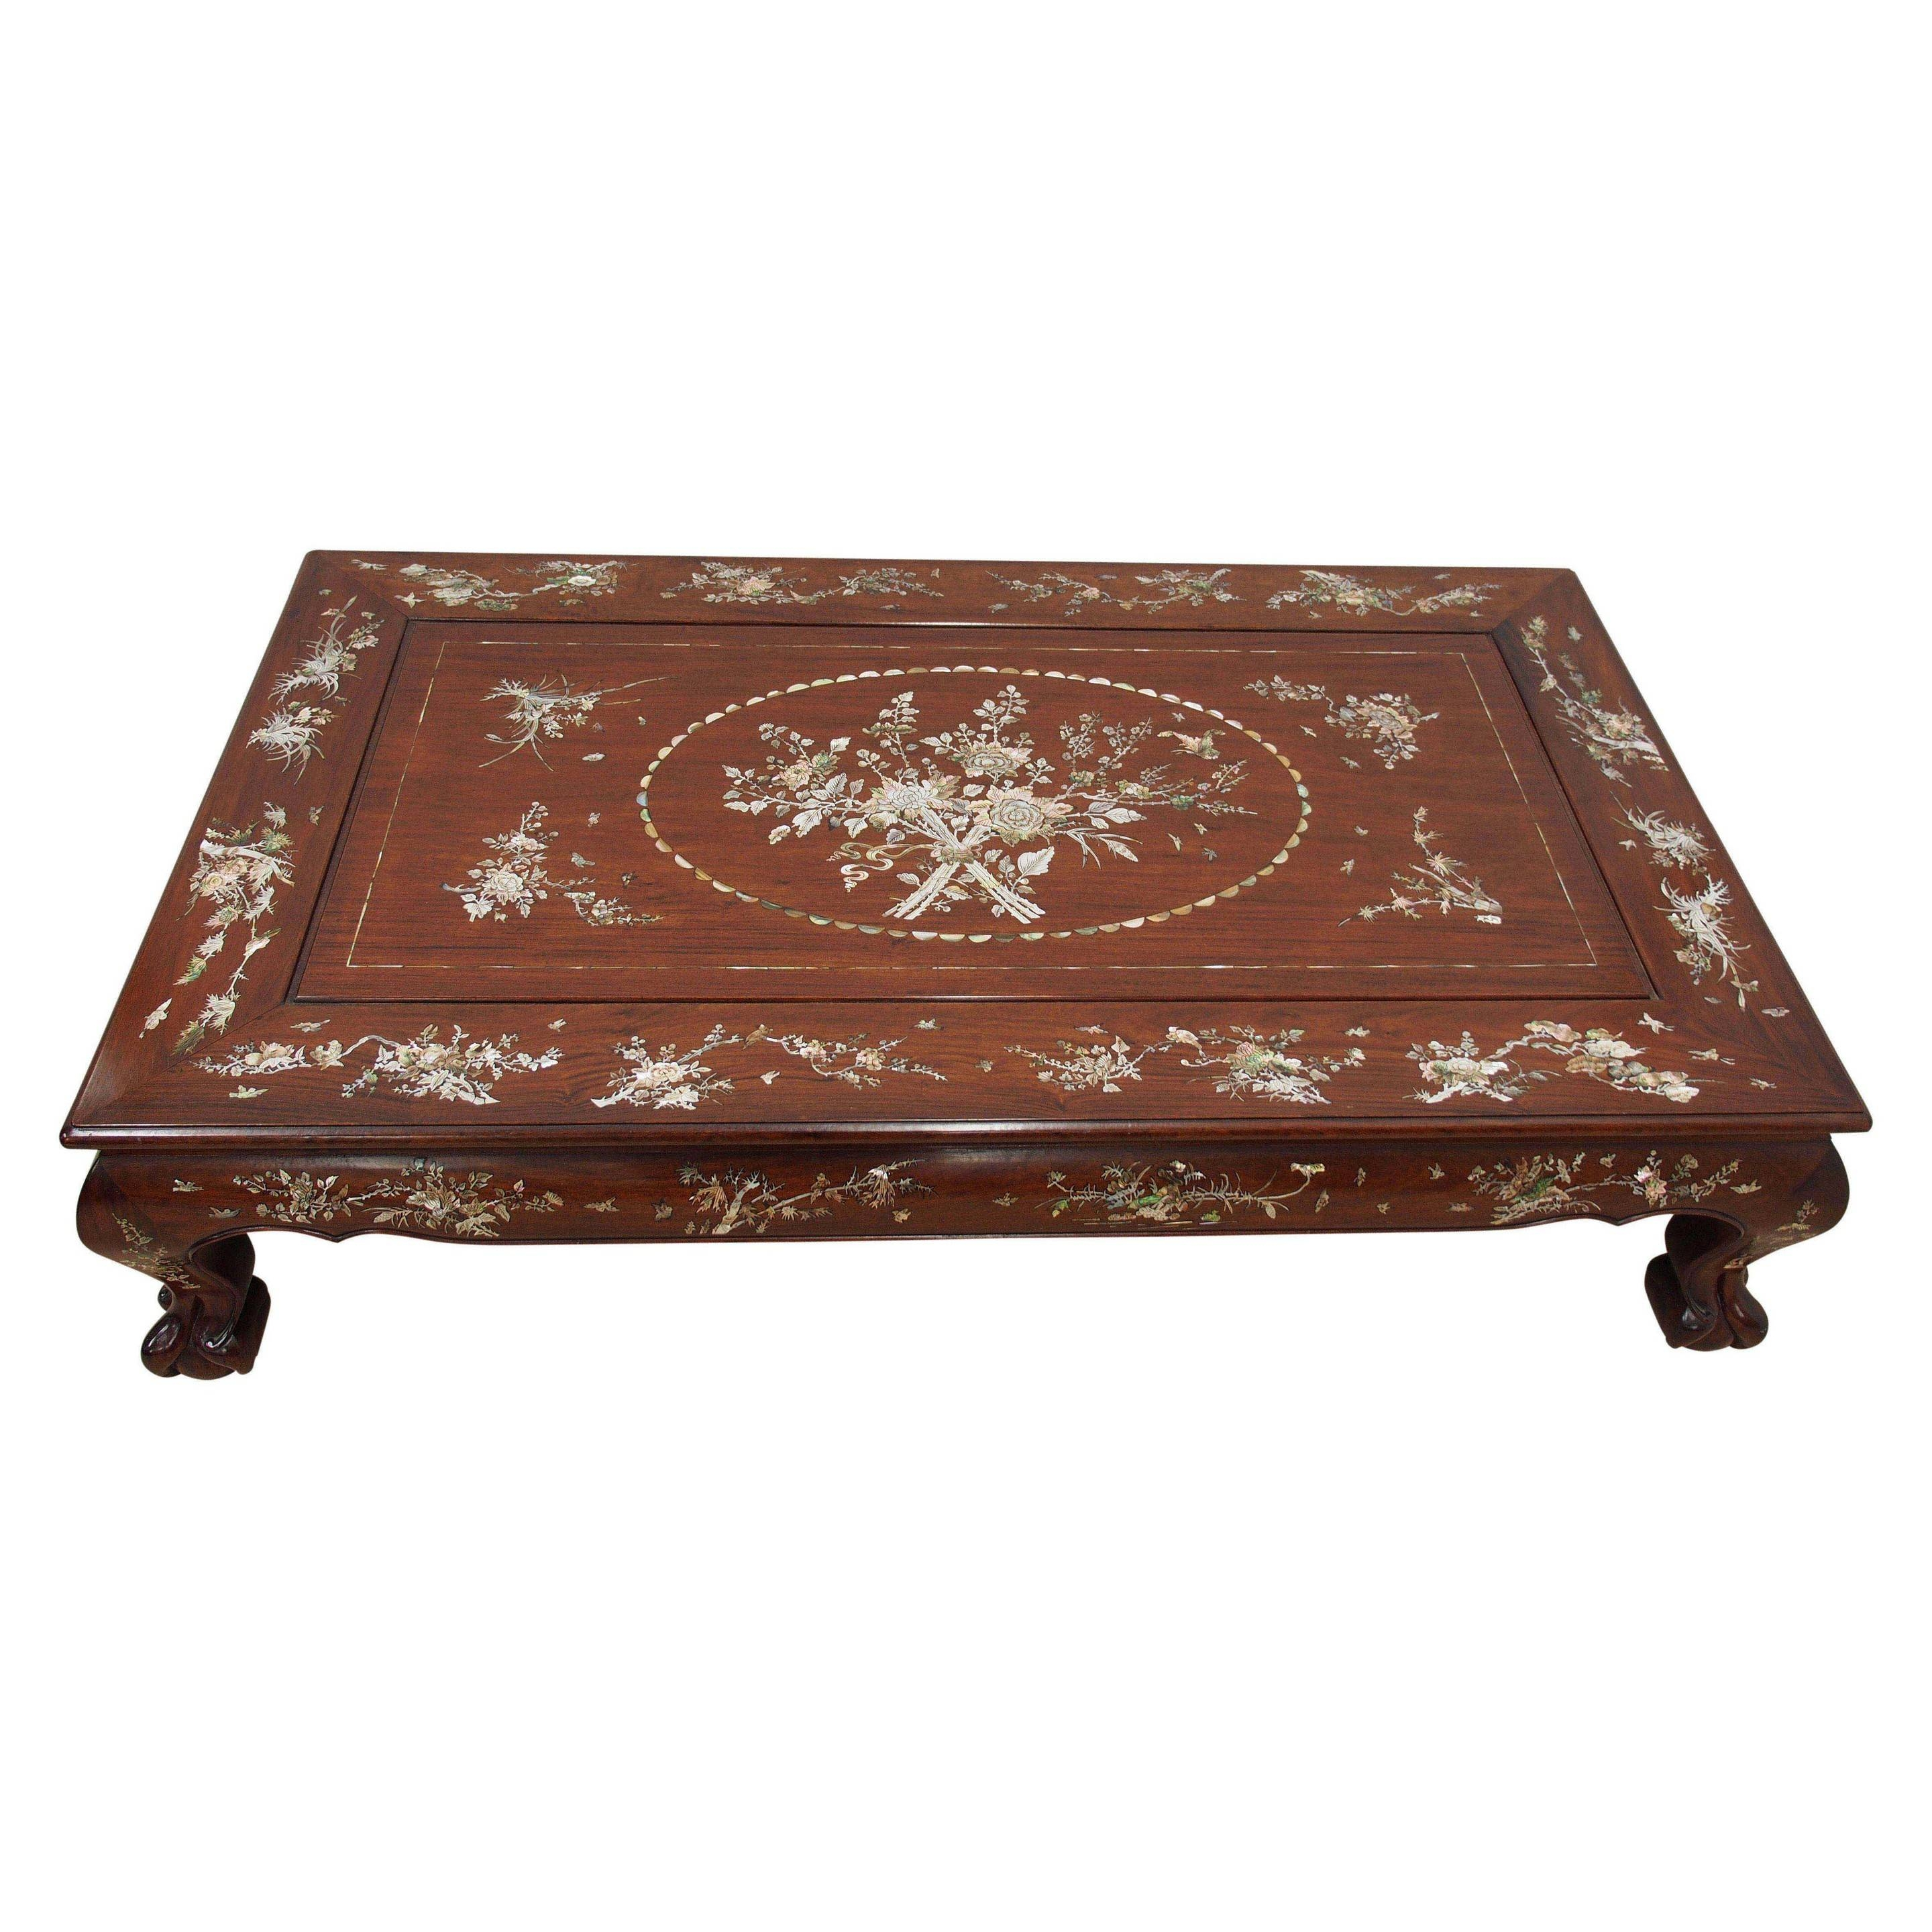 Chinese Rosewood And Mother Of Pearl Inlaid Coffee Table (20Th throughout Mother Of Pearl Coffee Tables (Image 5 of 30)